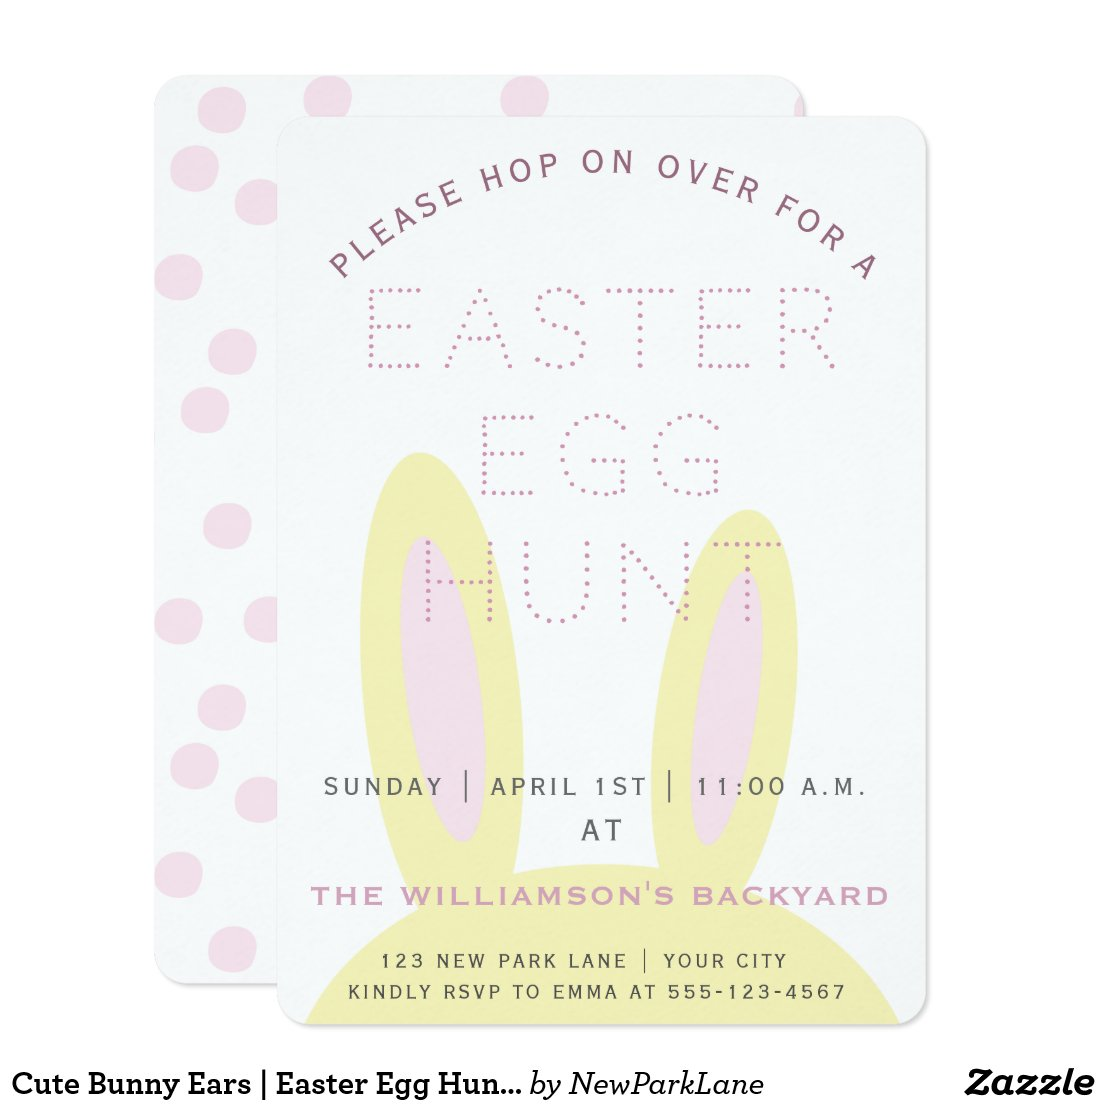 Cute Bunny Ears | Easter Egg Hunt Invitation